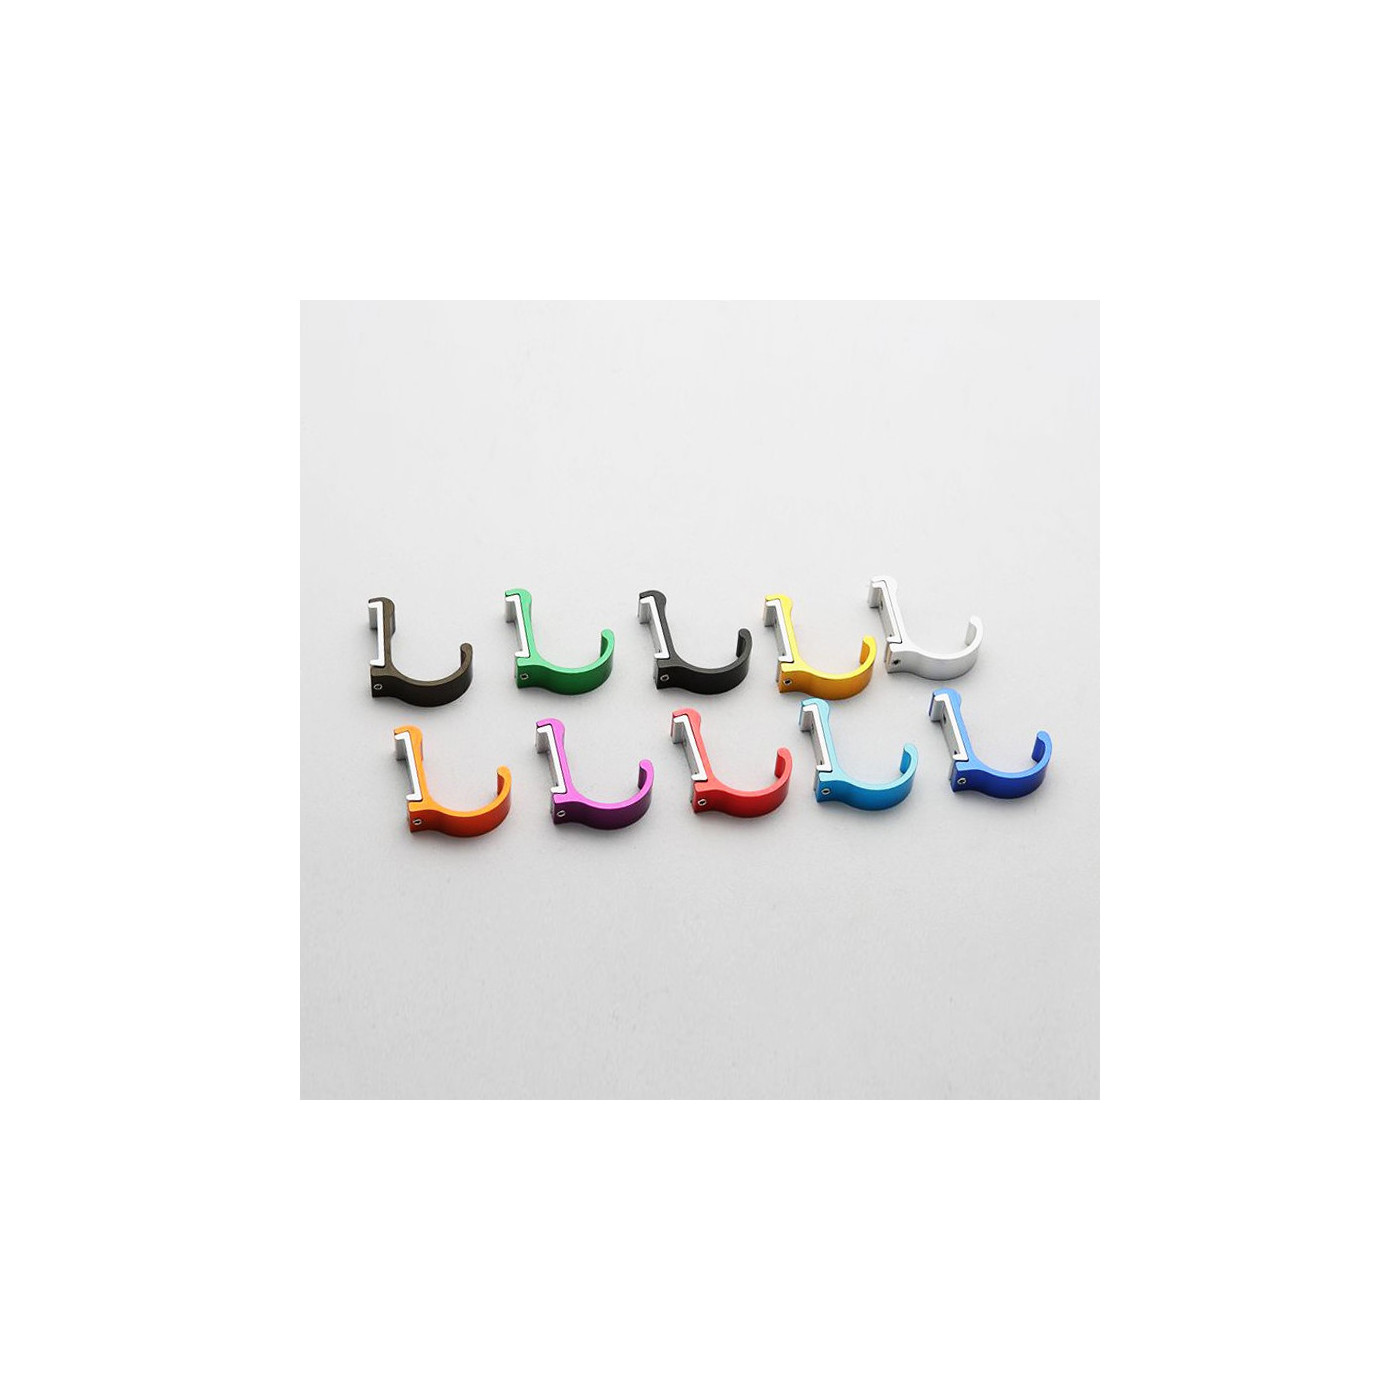 Set of 10 aluminum clothes hooks, colorful mix (curved, all 10